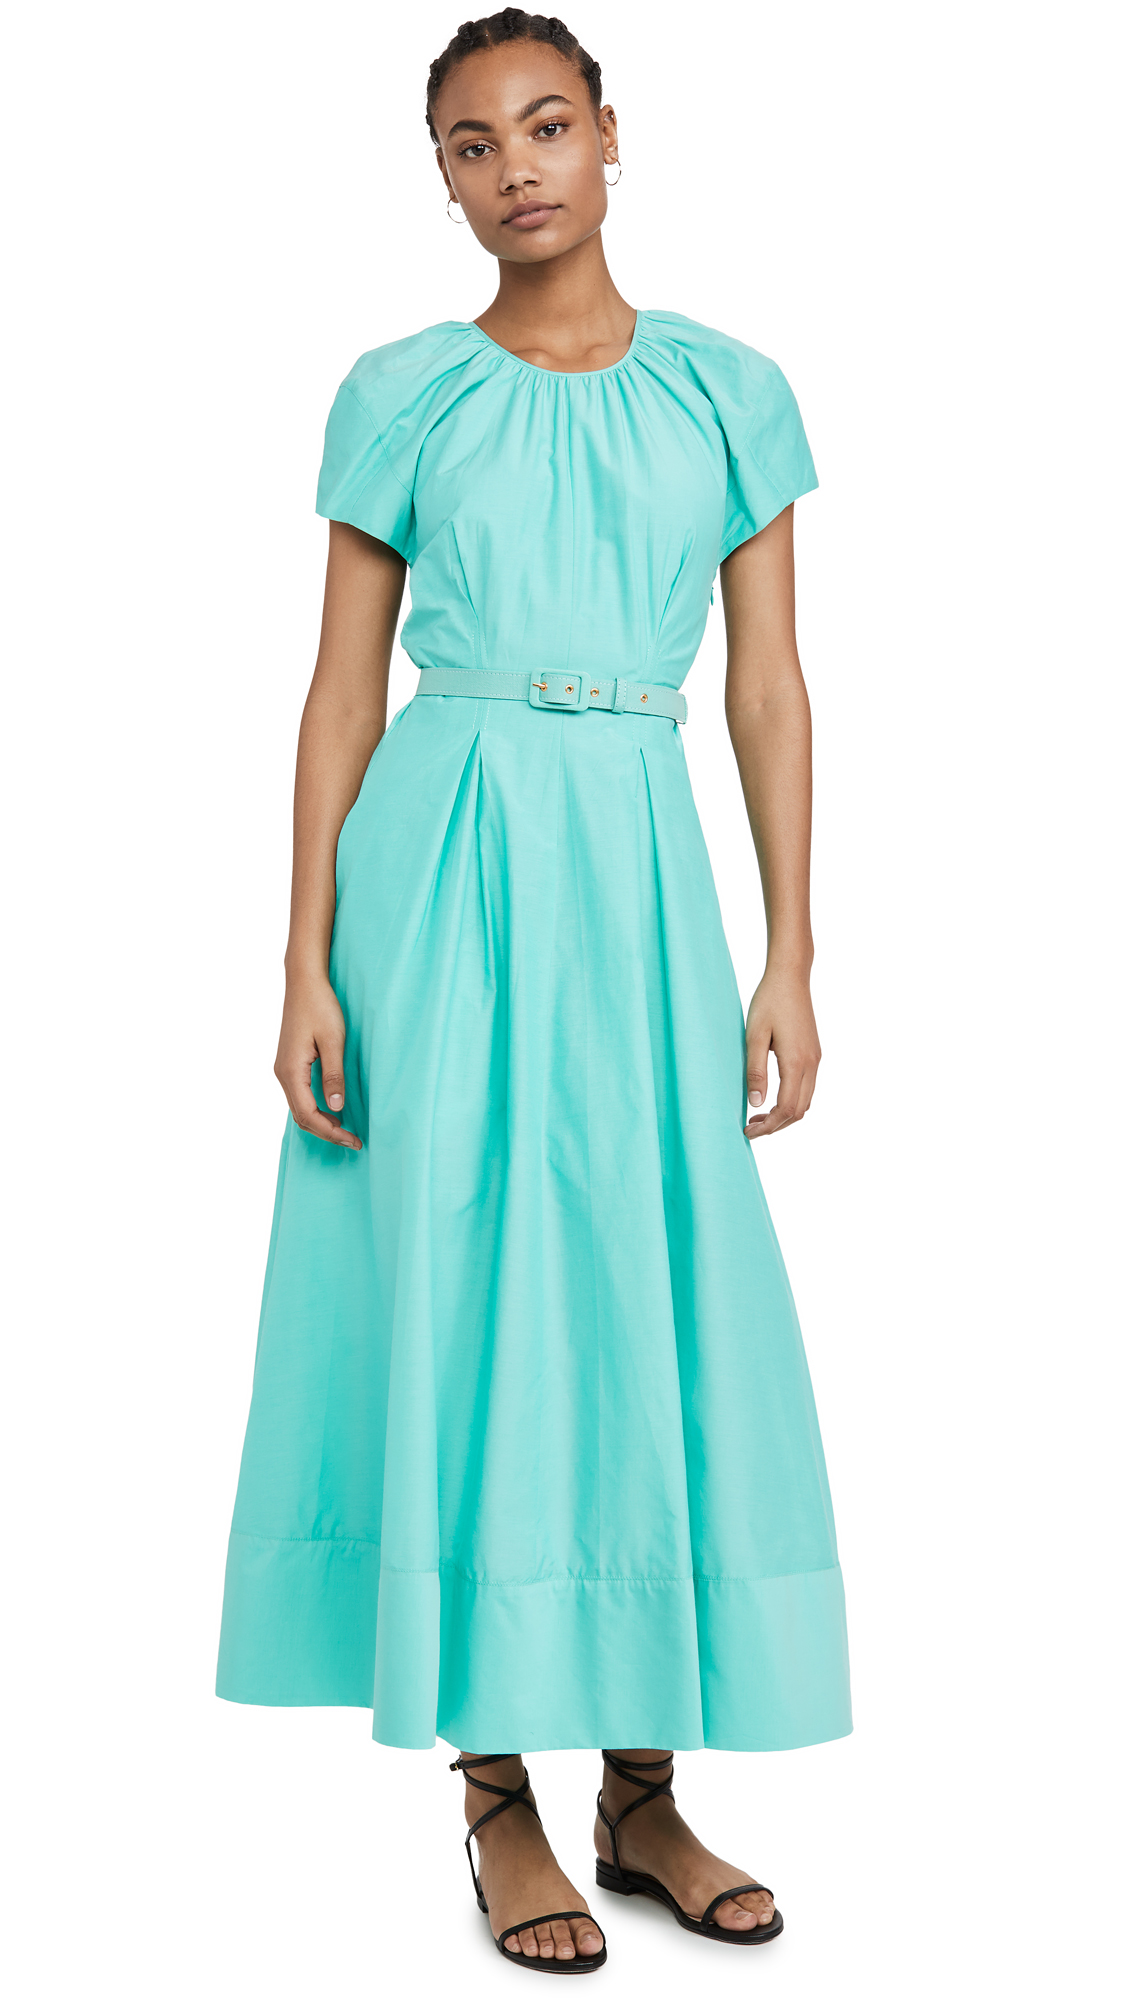 Nicholas Mary Dress